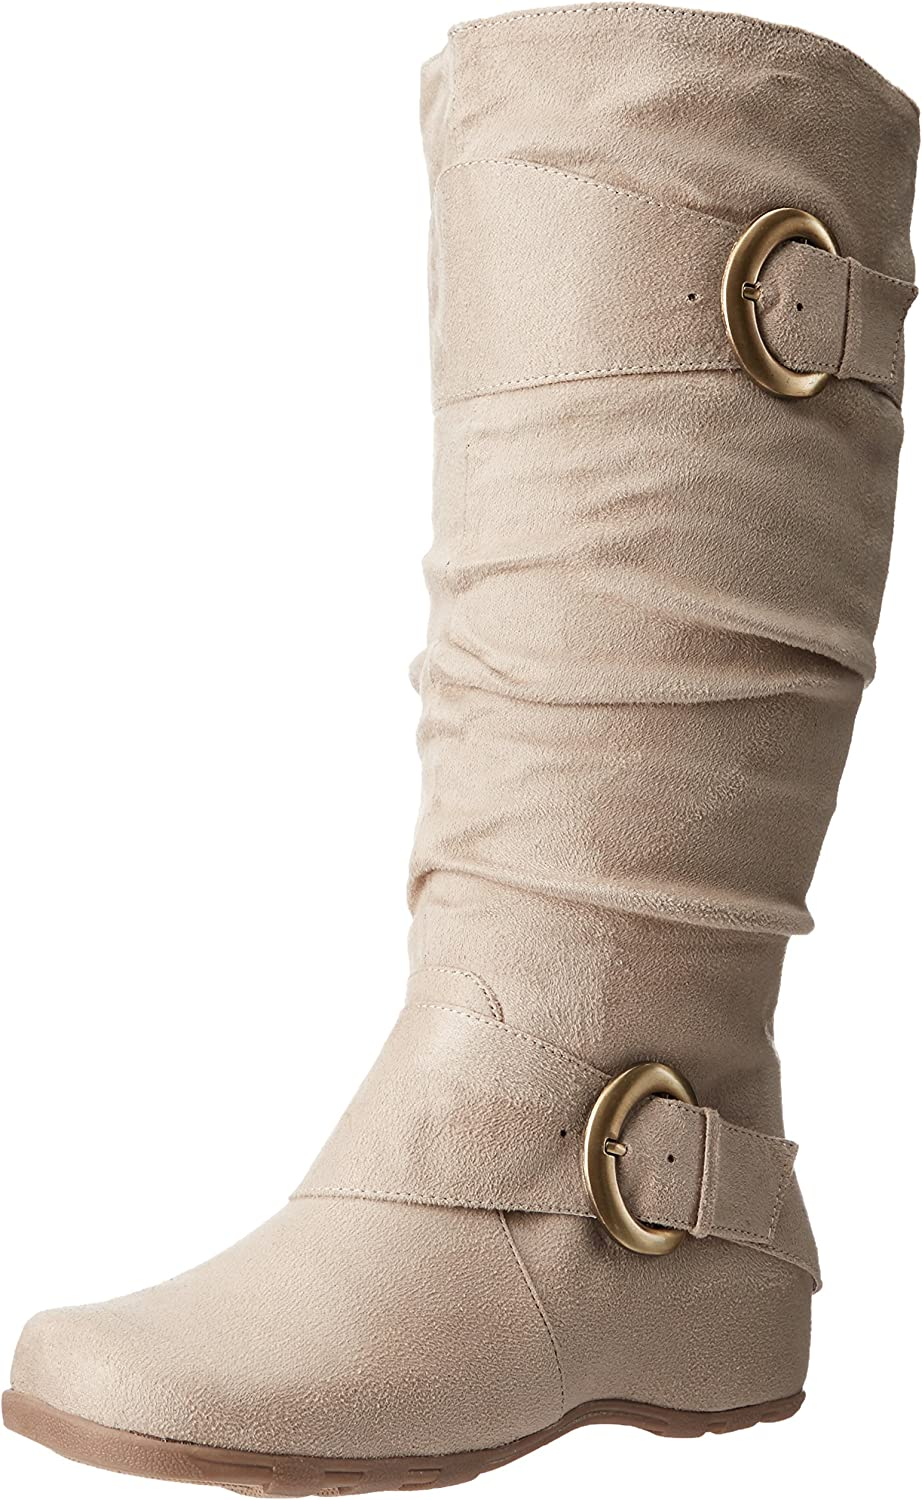 Brinley Co Womens Augusta-02wc Slouch Boot